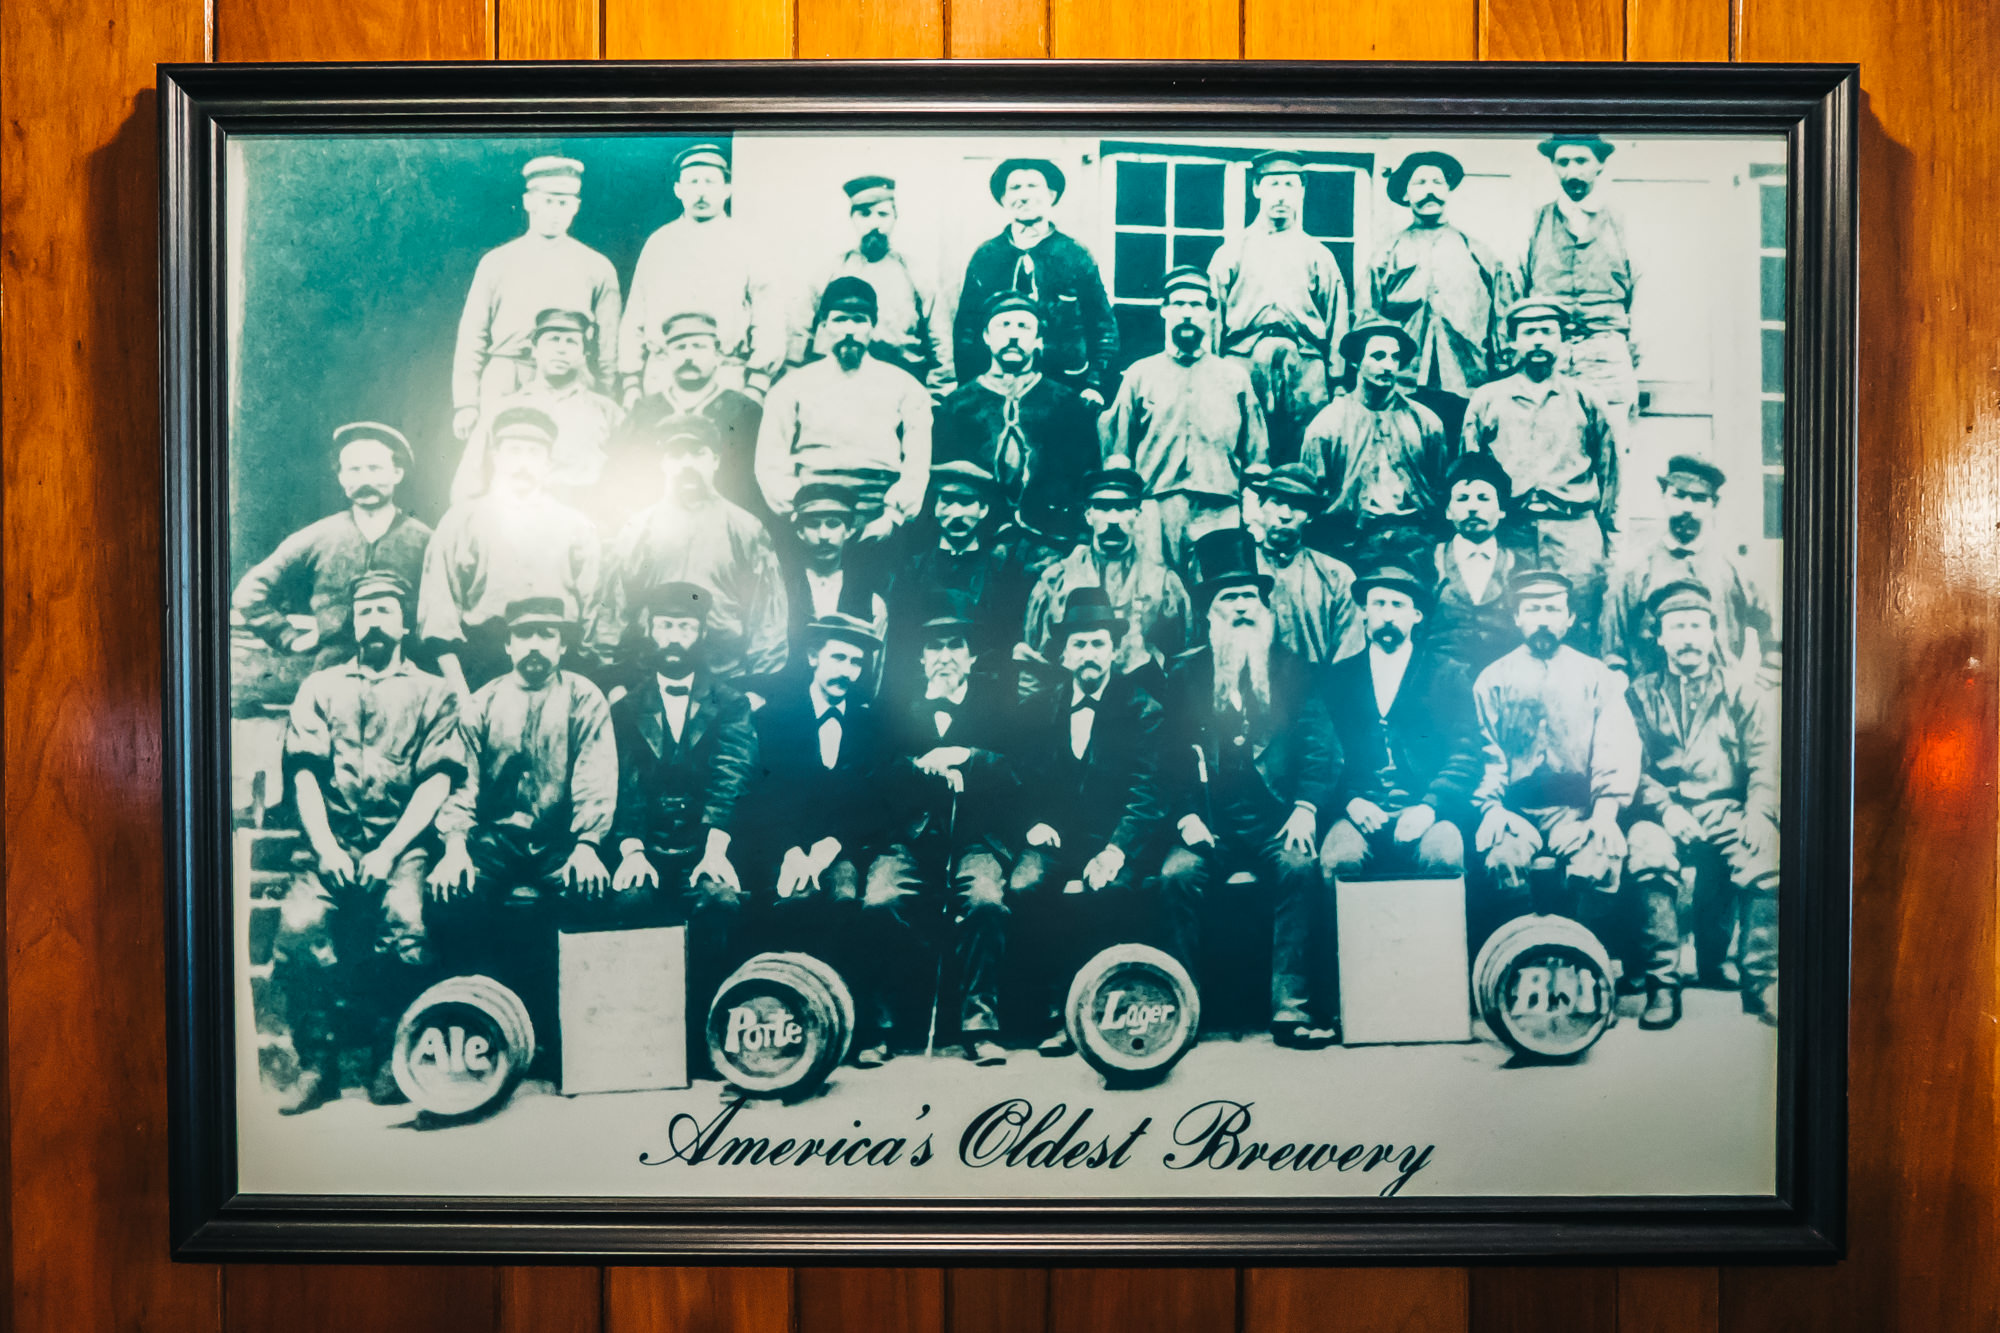 THE FOUNDER IS SITTING ON THE BOTTOM ROW RIGHT IN THE MIDDLE